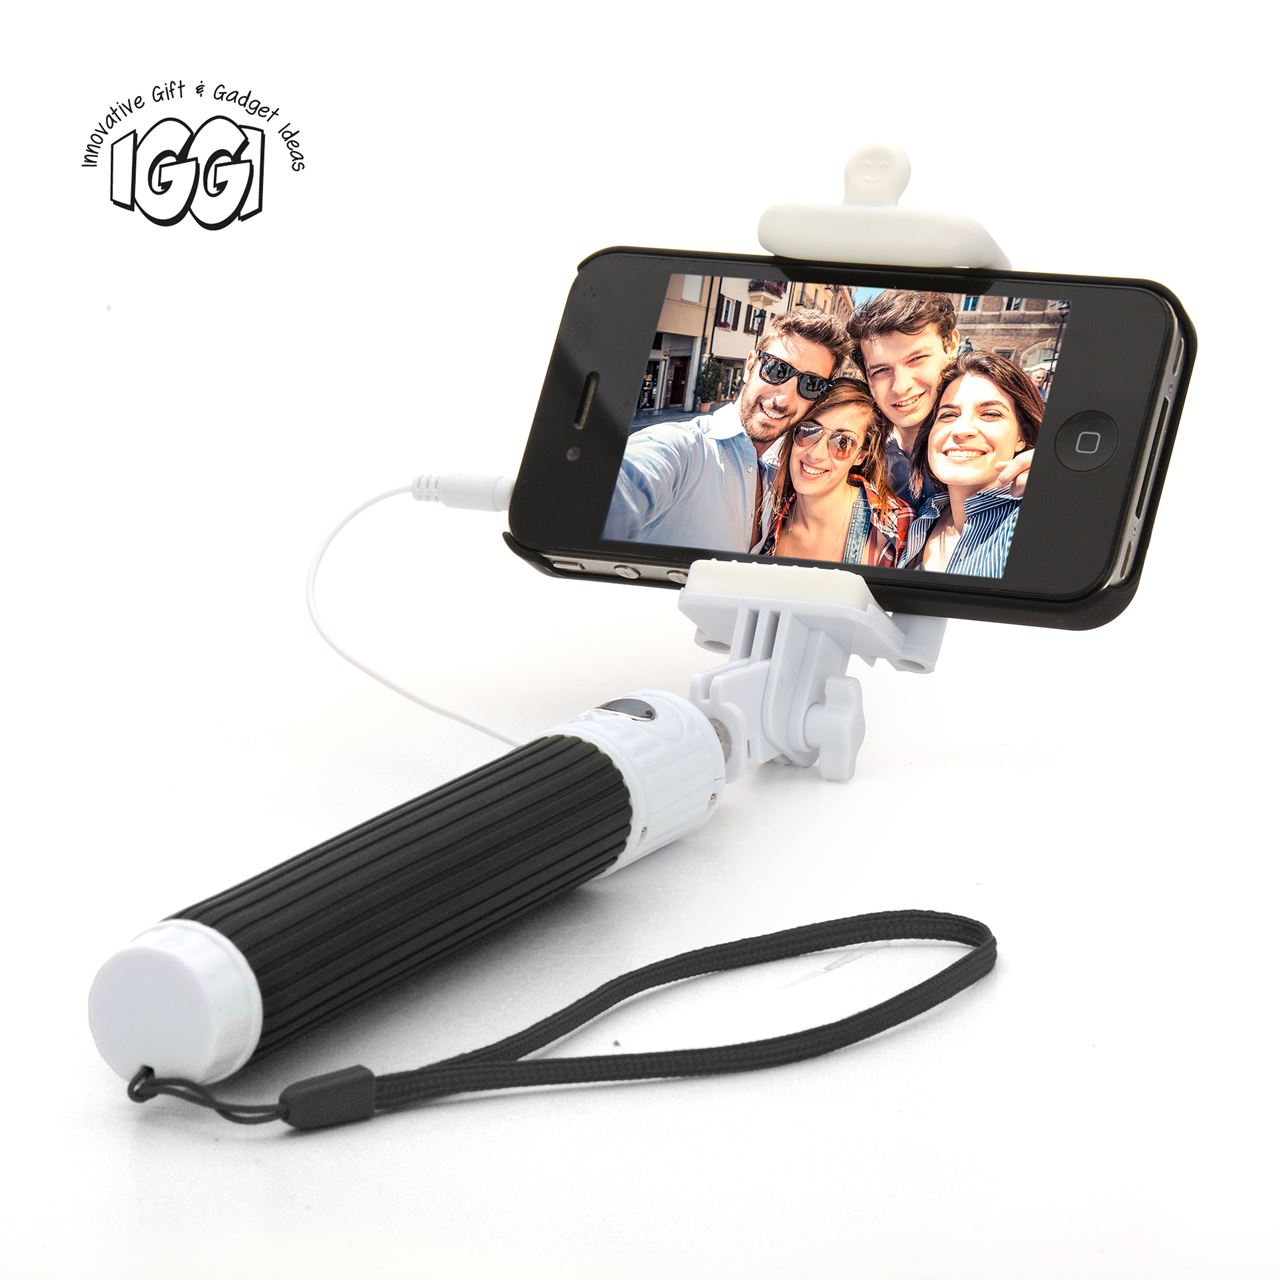 channeldistribution iggi pocket selfie stick. Black Bedroom Furniture Sets. Home Design Ideas